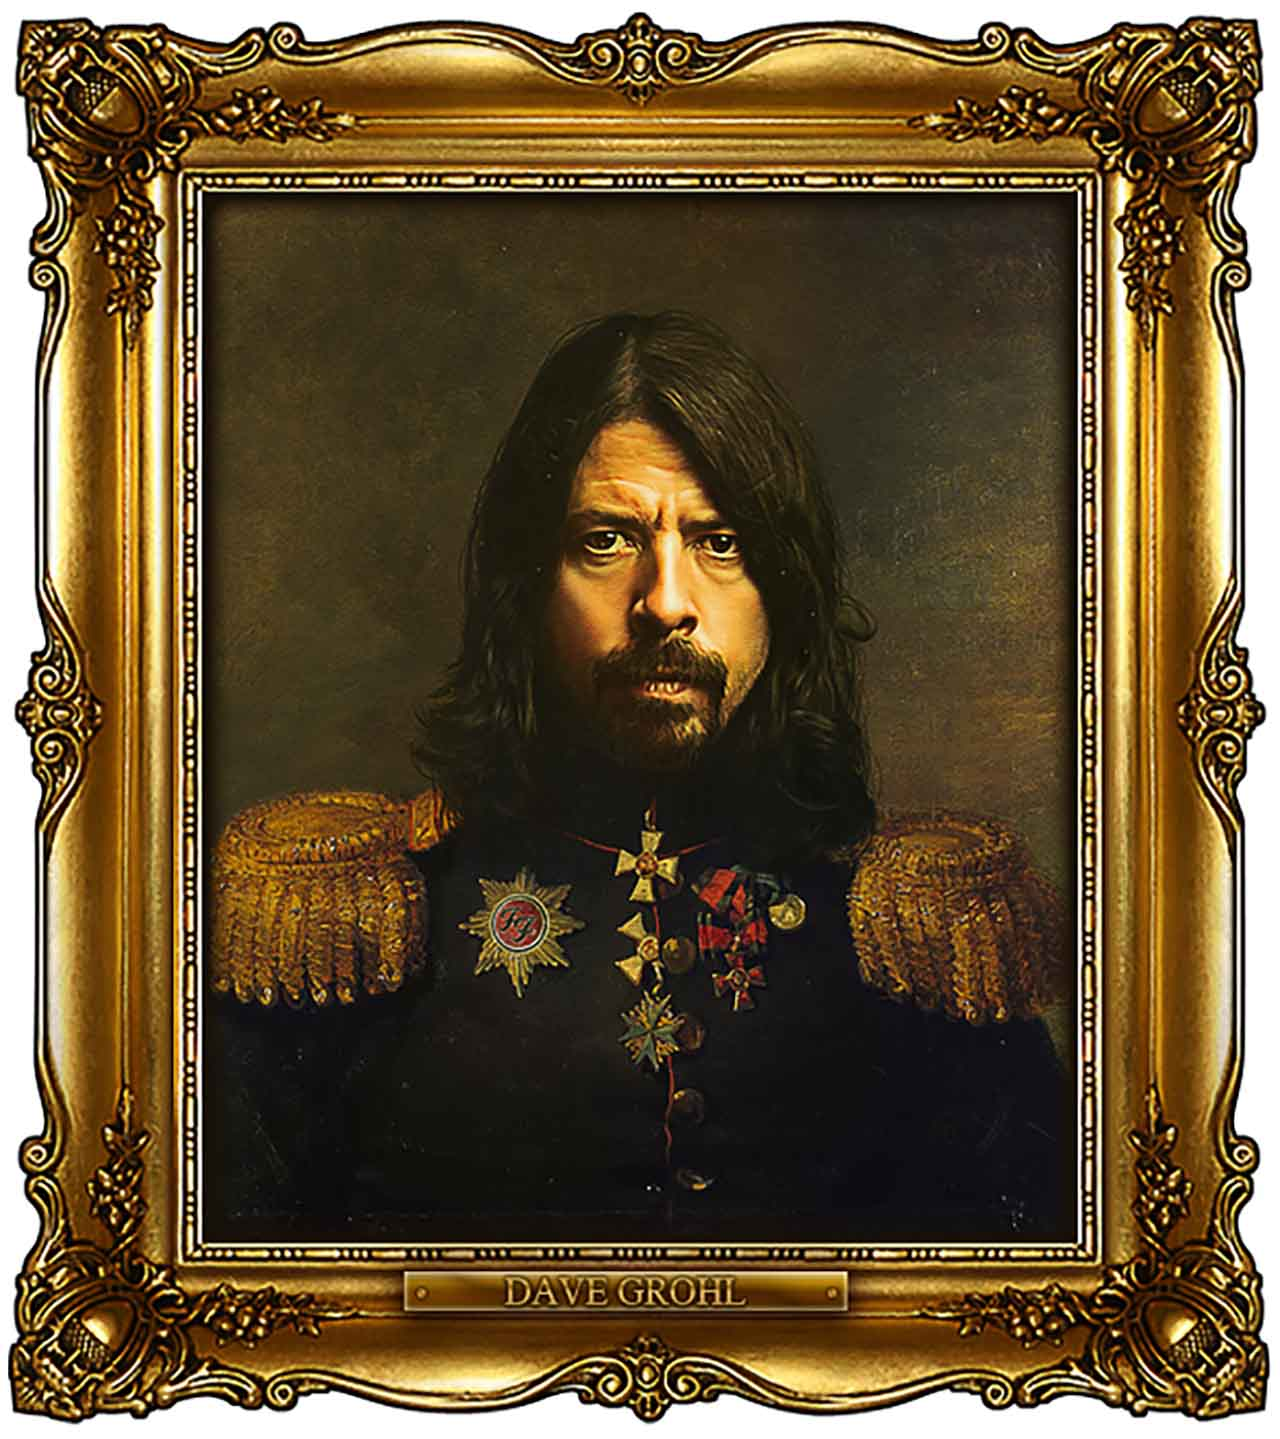 Artist Turns Famous Actors Into Russian Generals - Dave Grohl